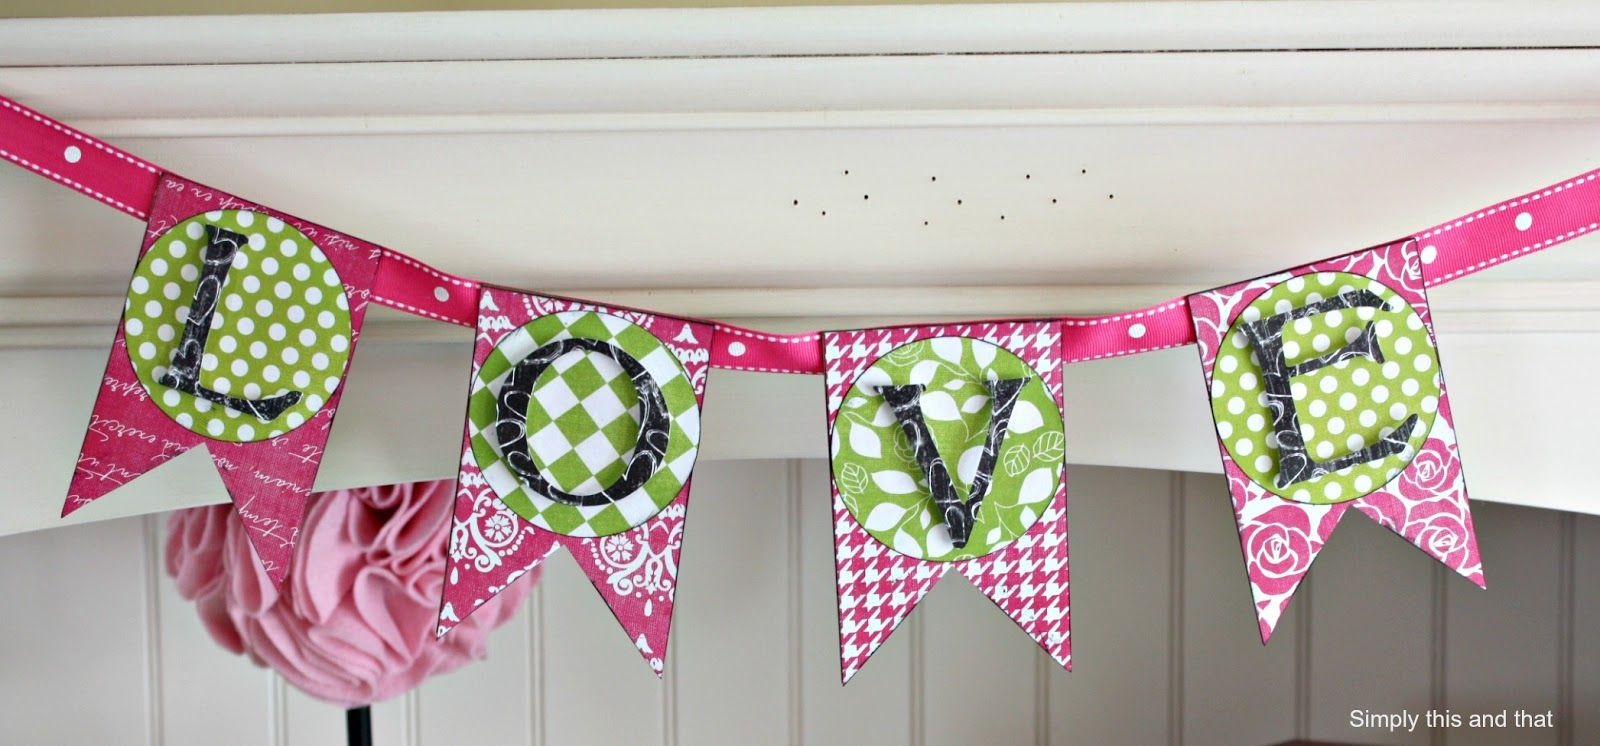 LOVE Pennant: via Simply This and that